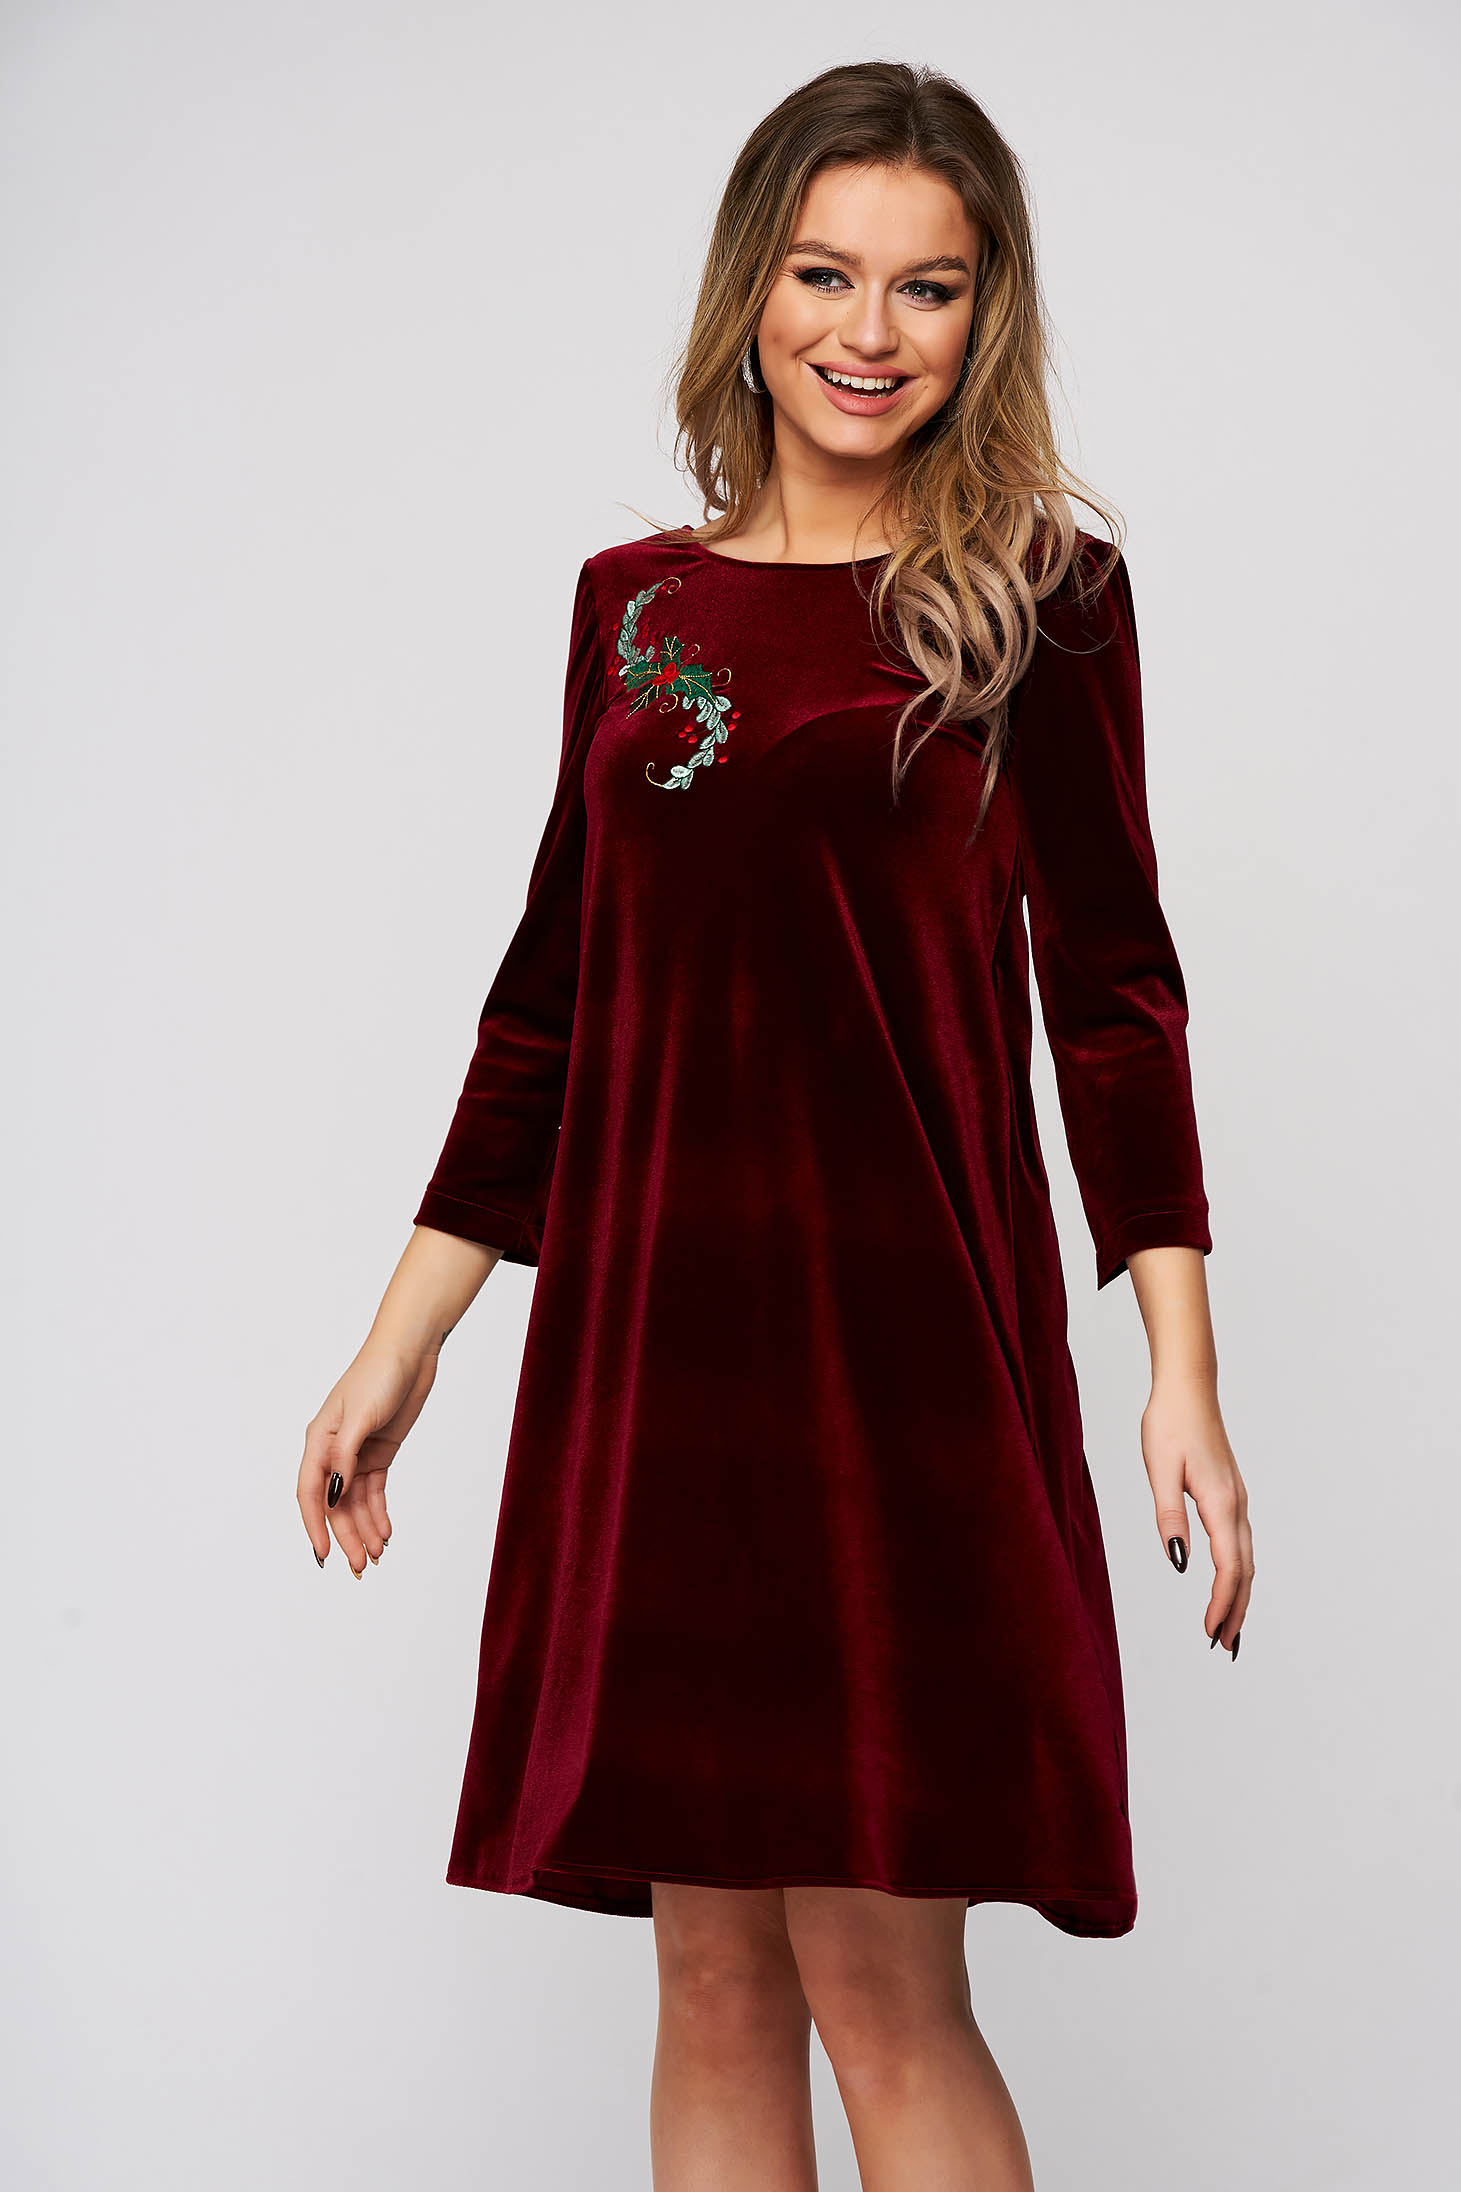 Dress StarShinerS burgundy occasional velvet flared v back neckline front embroidery with inside lining